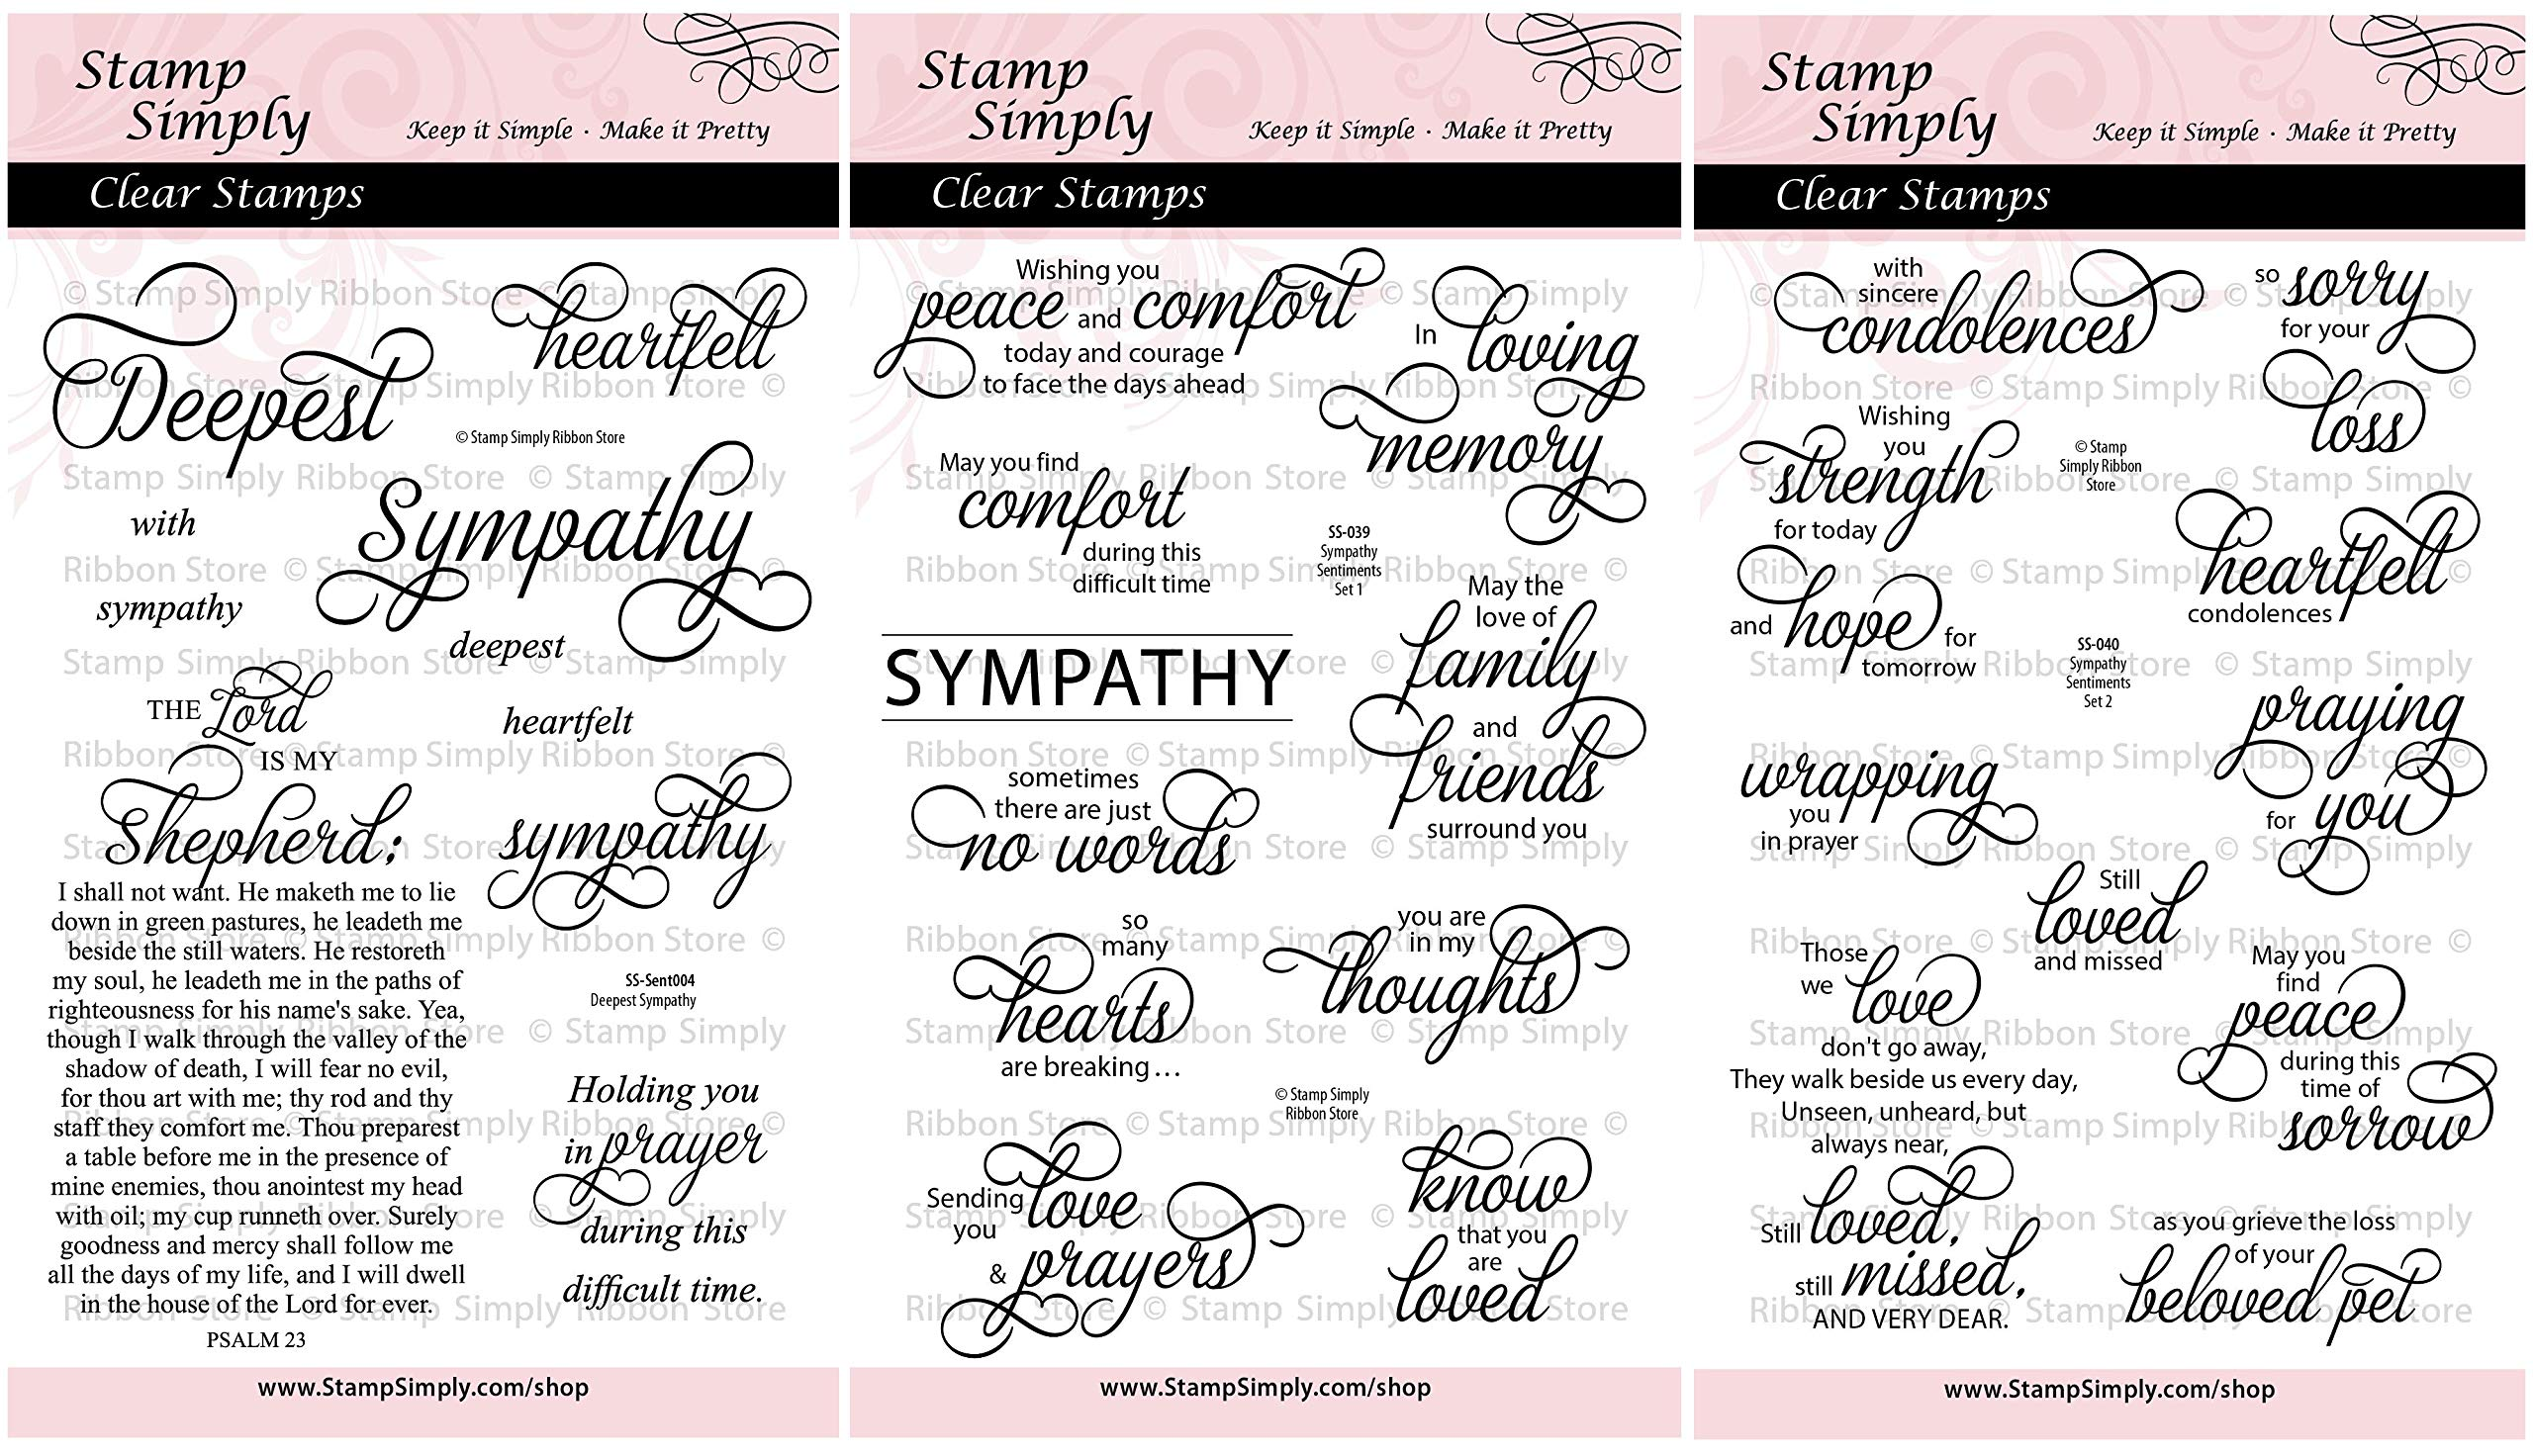 Stamp Simply Clear Stamps Sympathy Sentiments Trio Condolences and Loss (3-Pack) 4x6 Inch Sheets - 30 Pieces by Stamp Simply